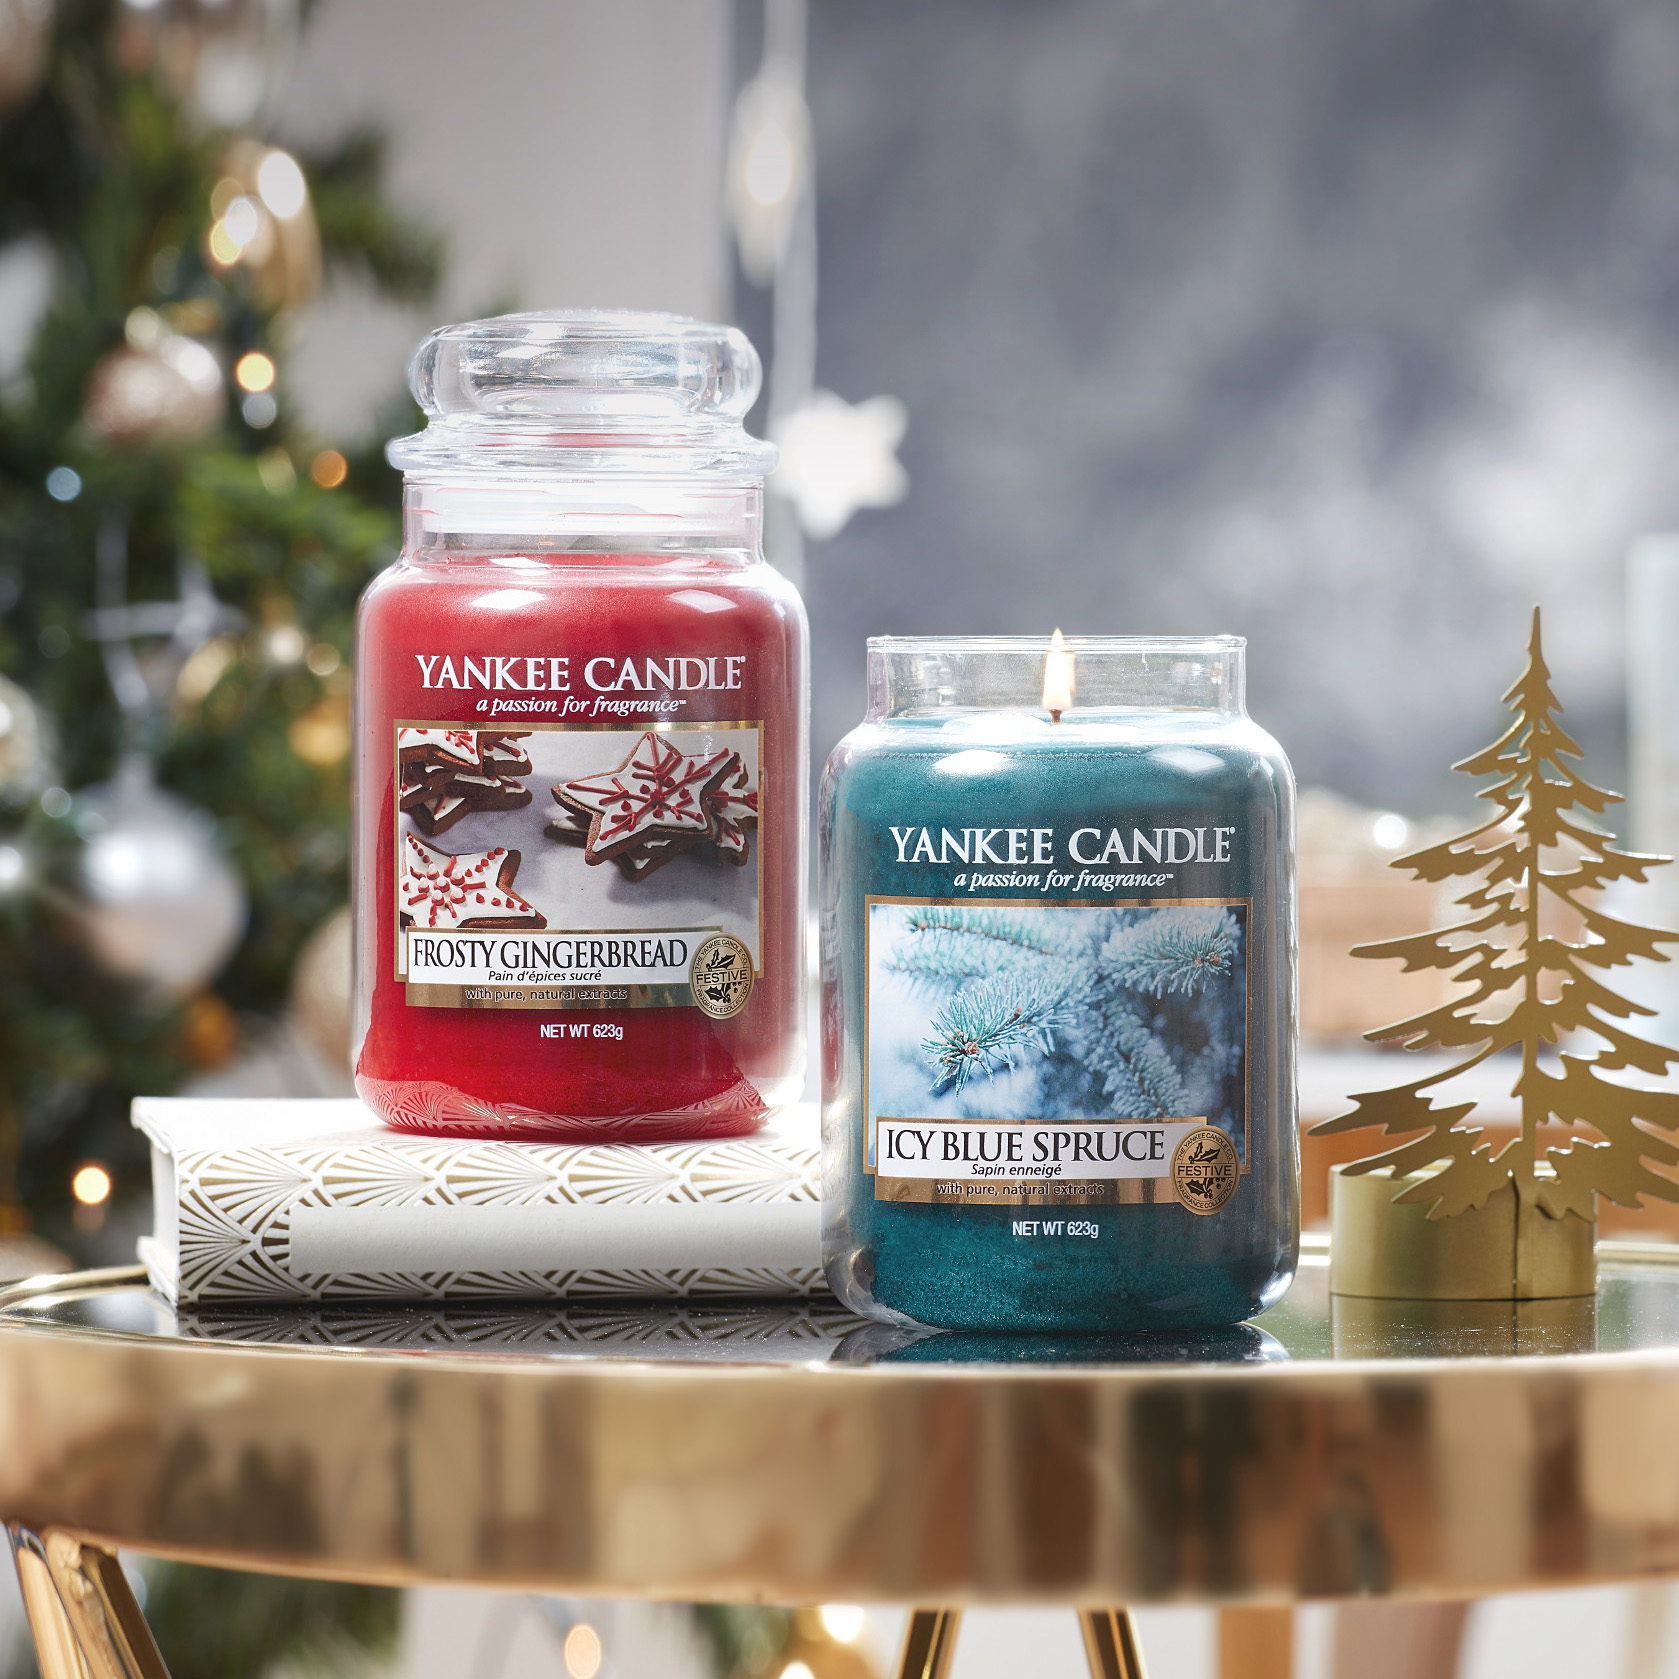 nouveaux parfums noel yankee candle sparkle holiday Holiday Sparkle_Frosty Gingerbread_Ice Blue Spruce